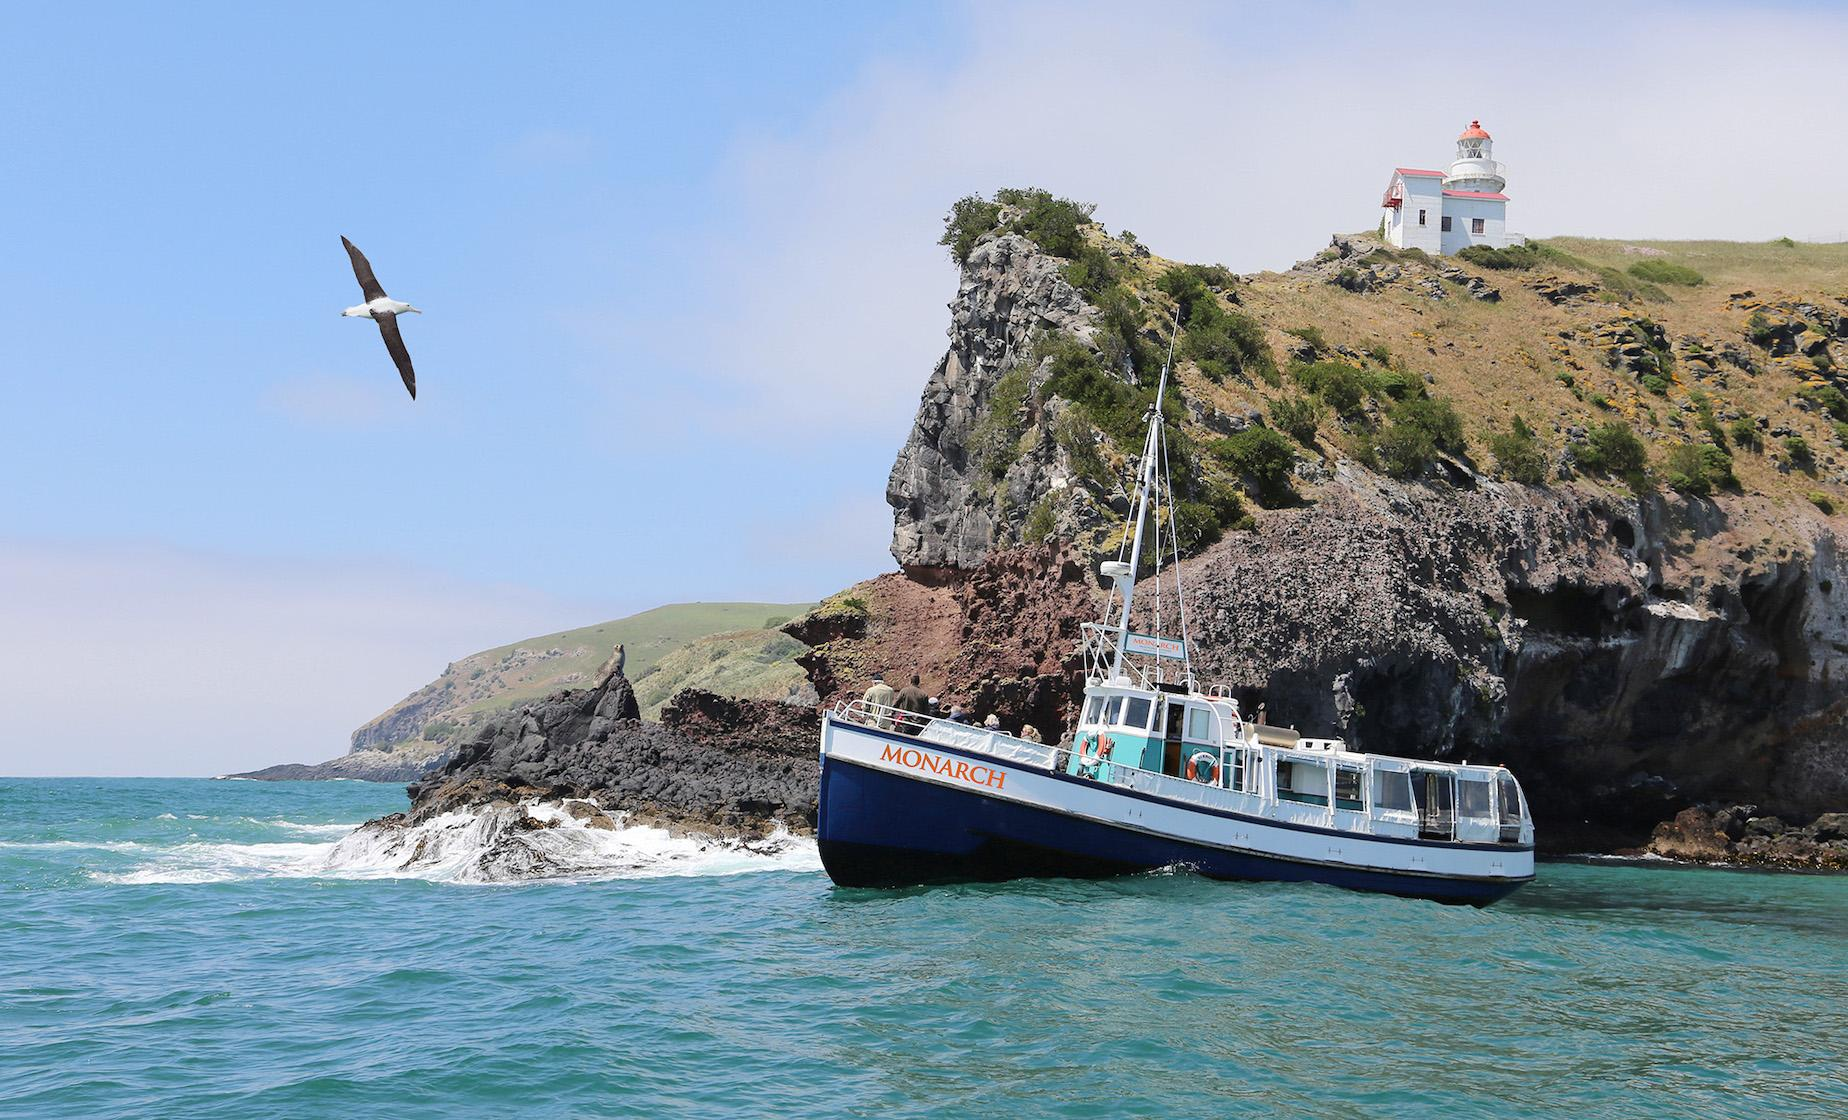 Otago Wildlife Cruise, Penguin Reserve & Dunedin Highlights